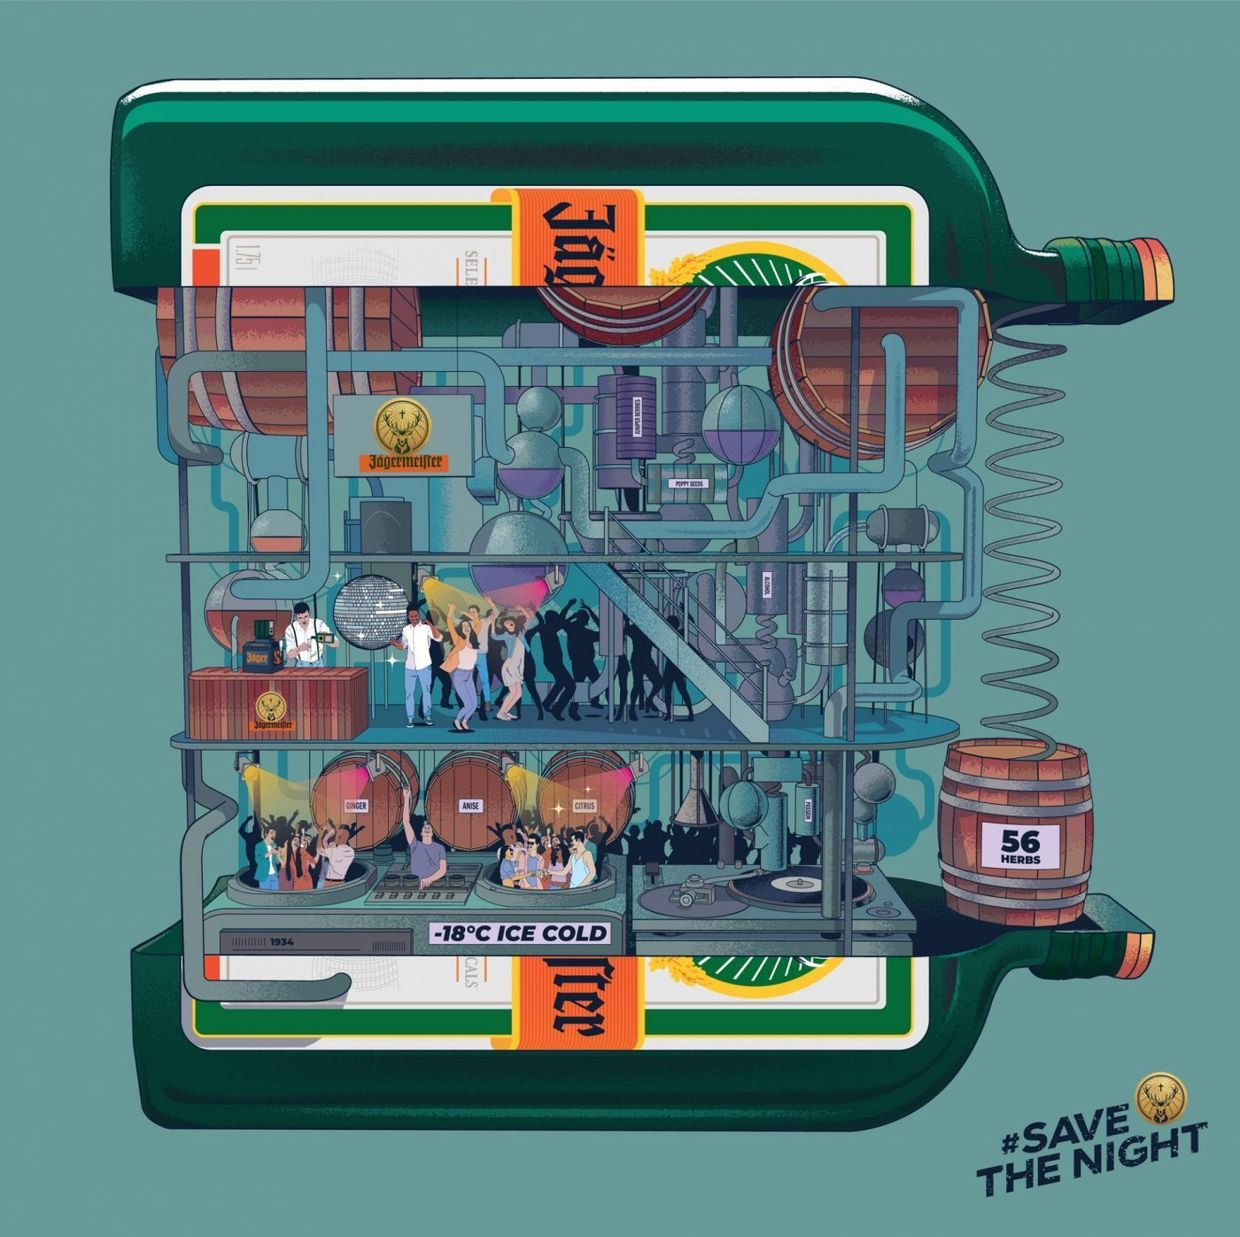 #savethenight initiative for Jägermeister illustrated by Musketon c/o JSR AGENCY